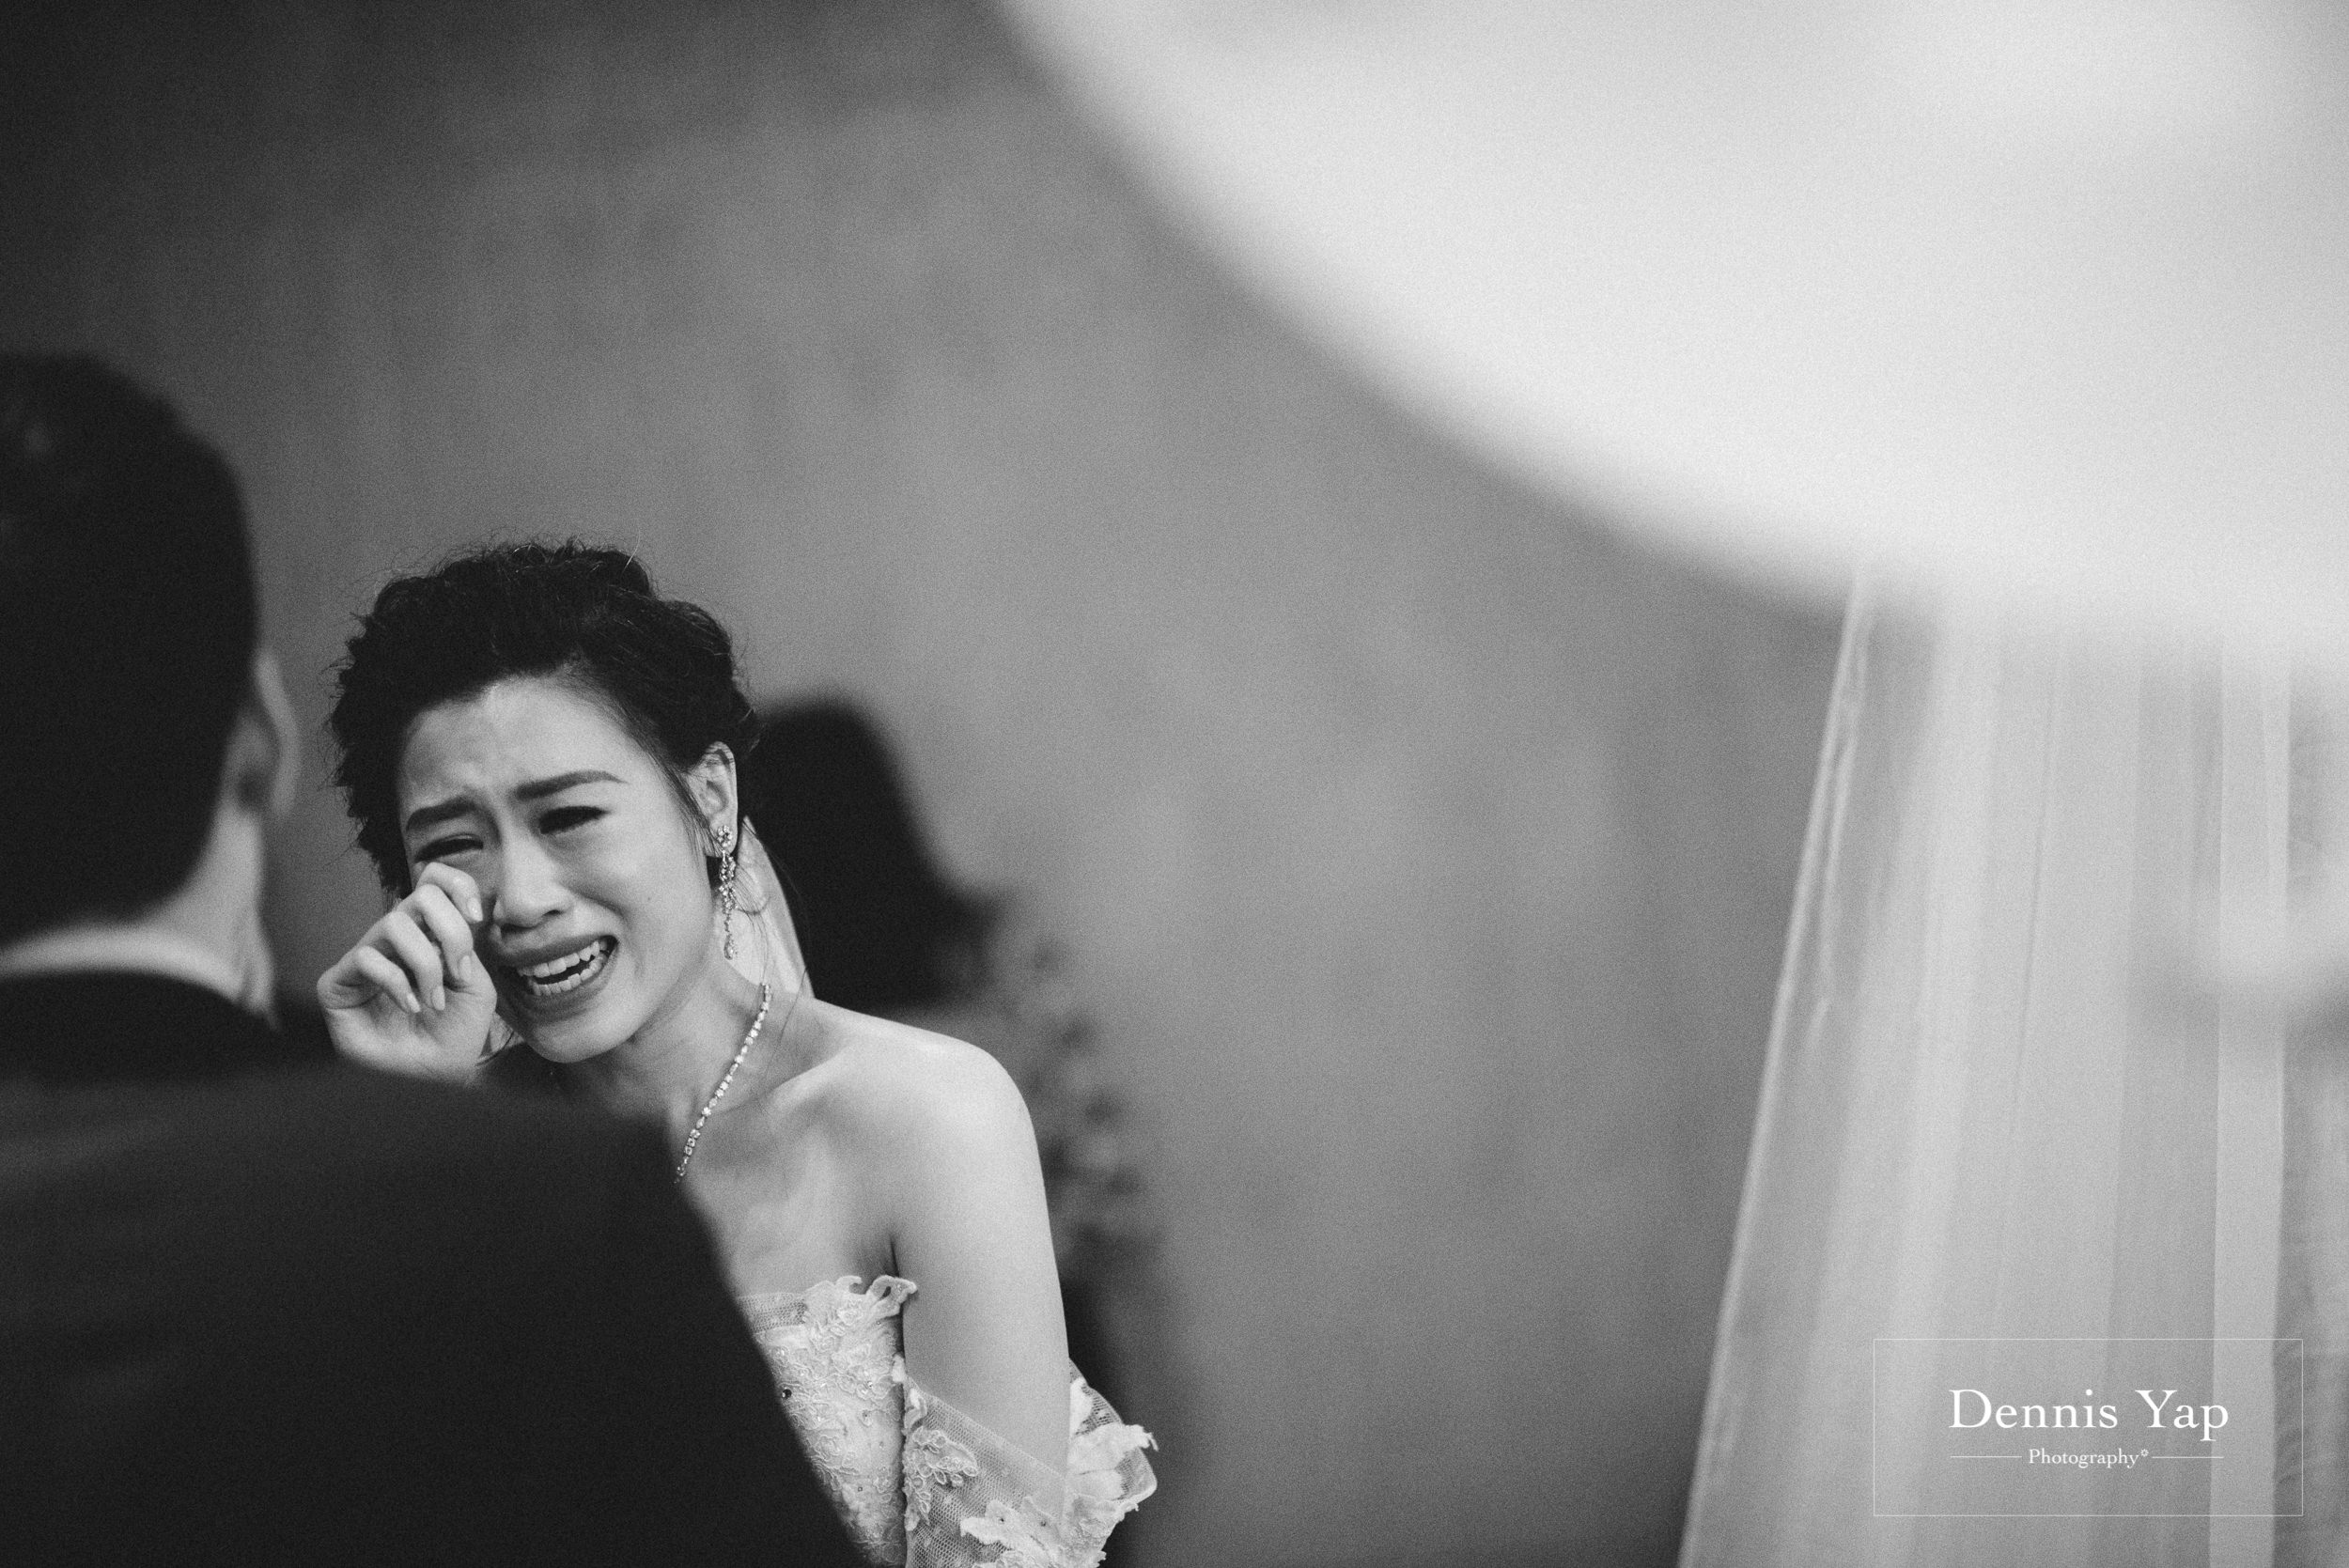 ser siang sze liang rom registration of marriage KL journal hotel dennis yap photography-20.jpg